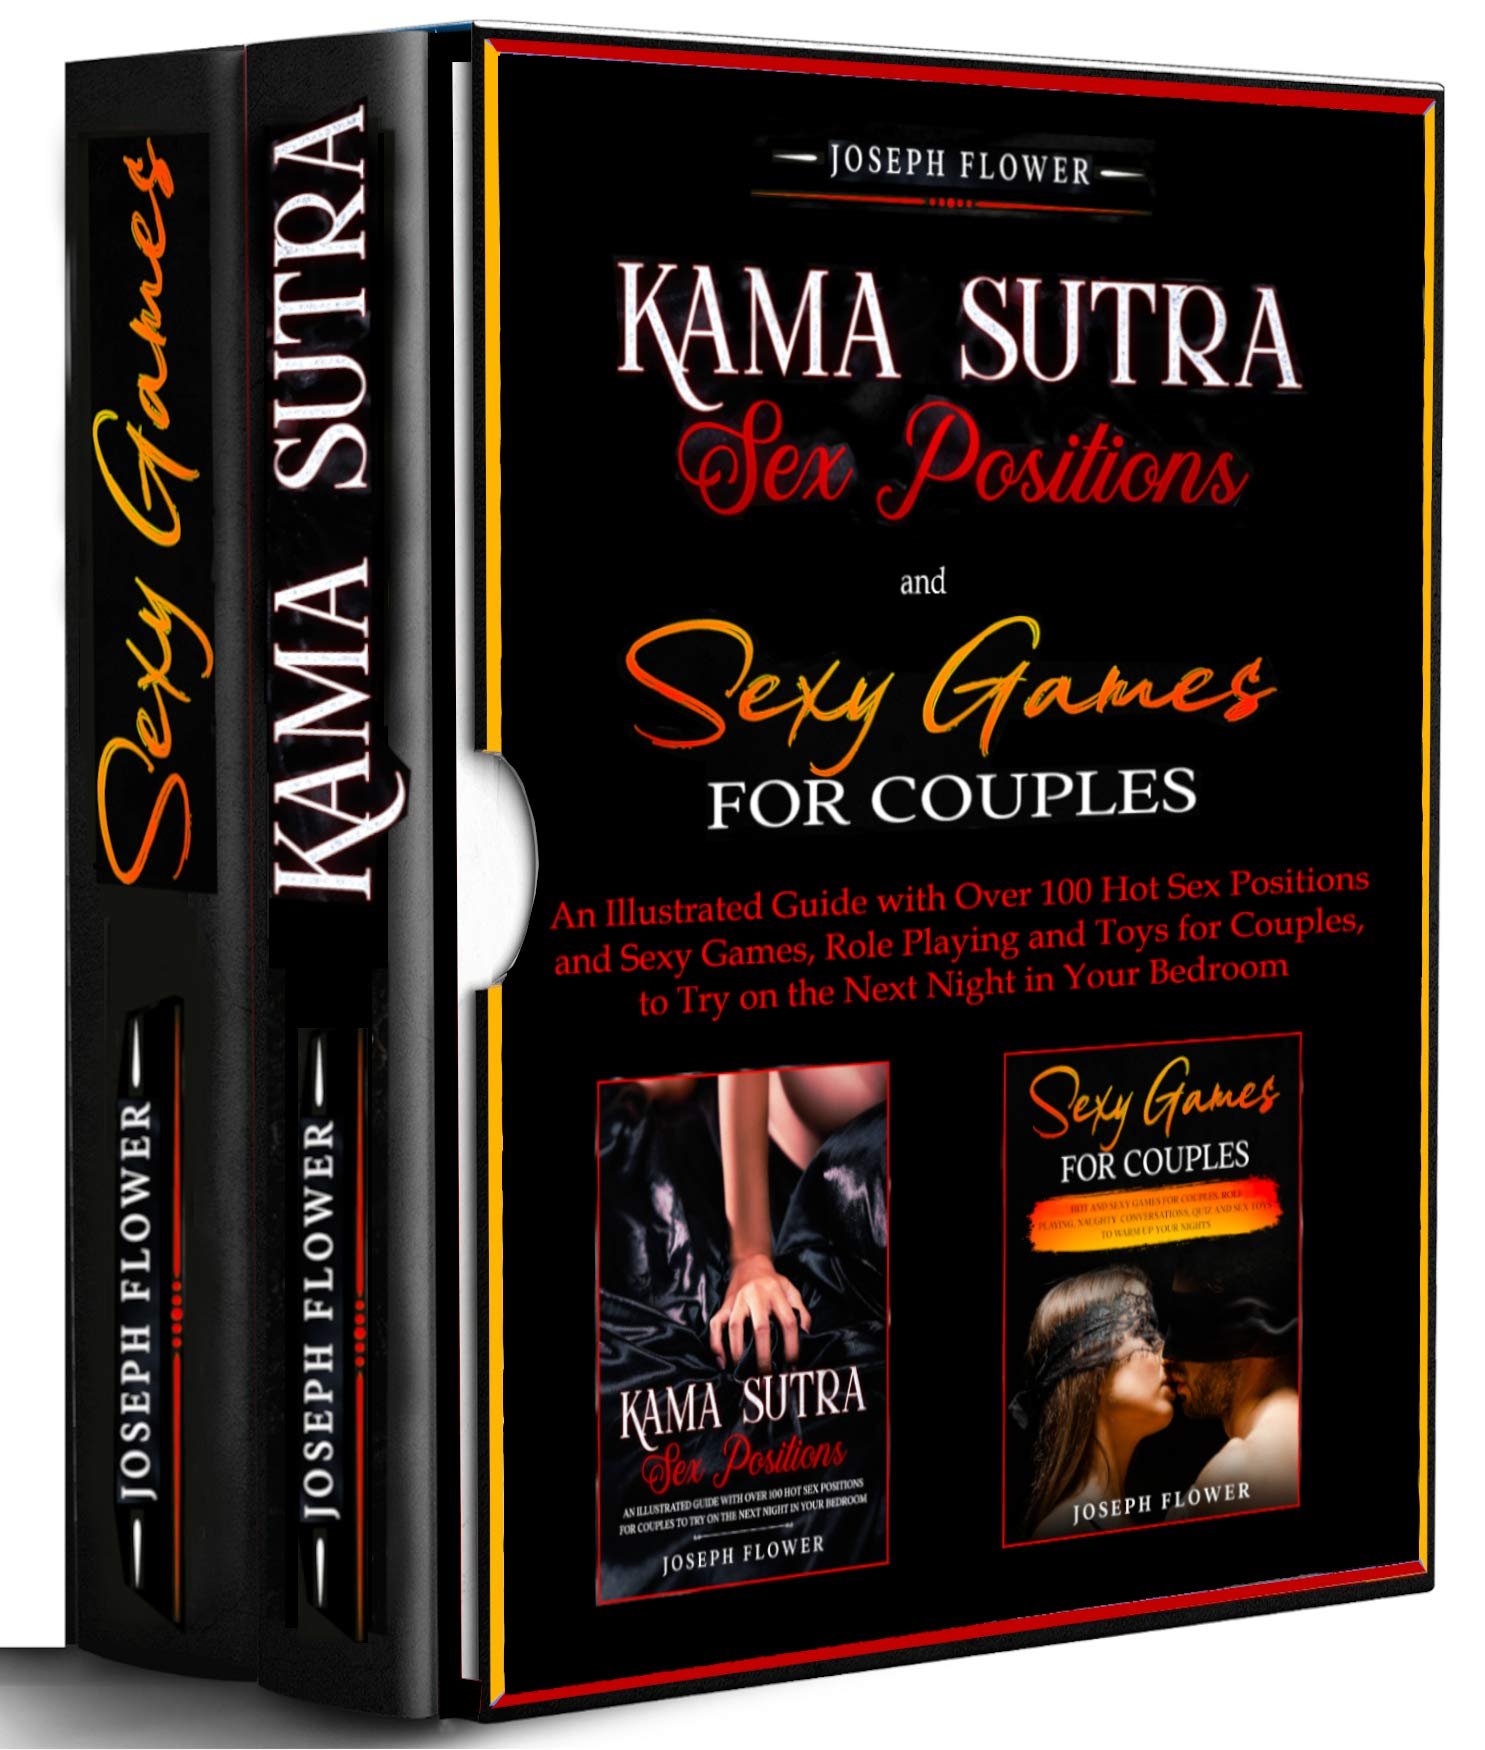 Kama Sutra Sex Positions and Sexy Games for Couples - 2 BOOKS IN 1 -: An Illustrated Guide with Over 100 Hot Sex Positions and Sexy Games for Couples to Try on the Next Night in Your Bedroom